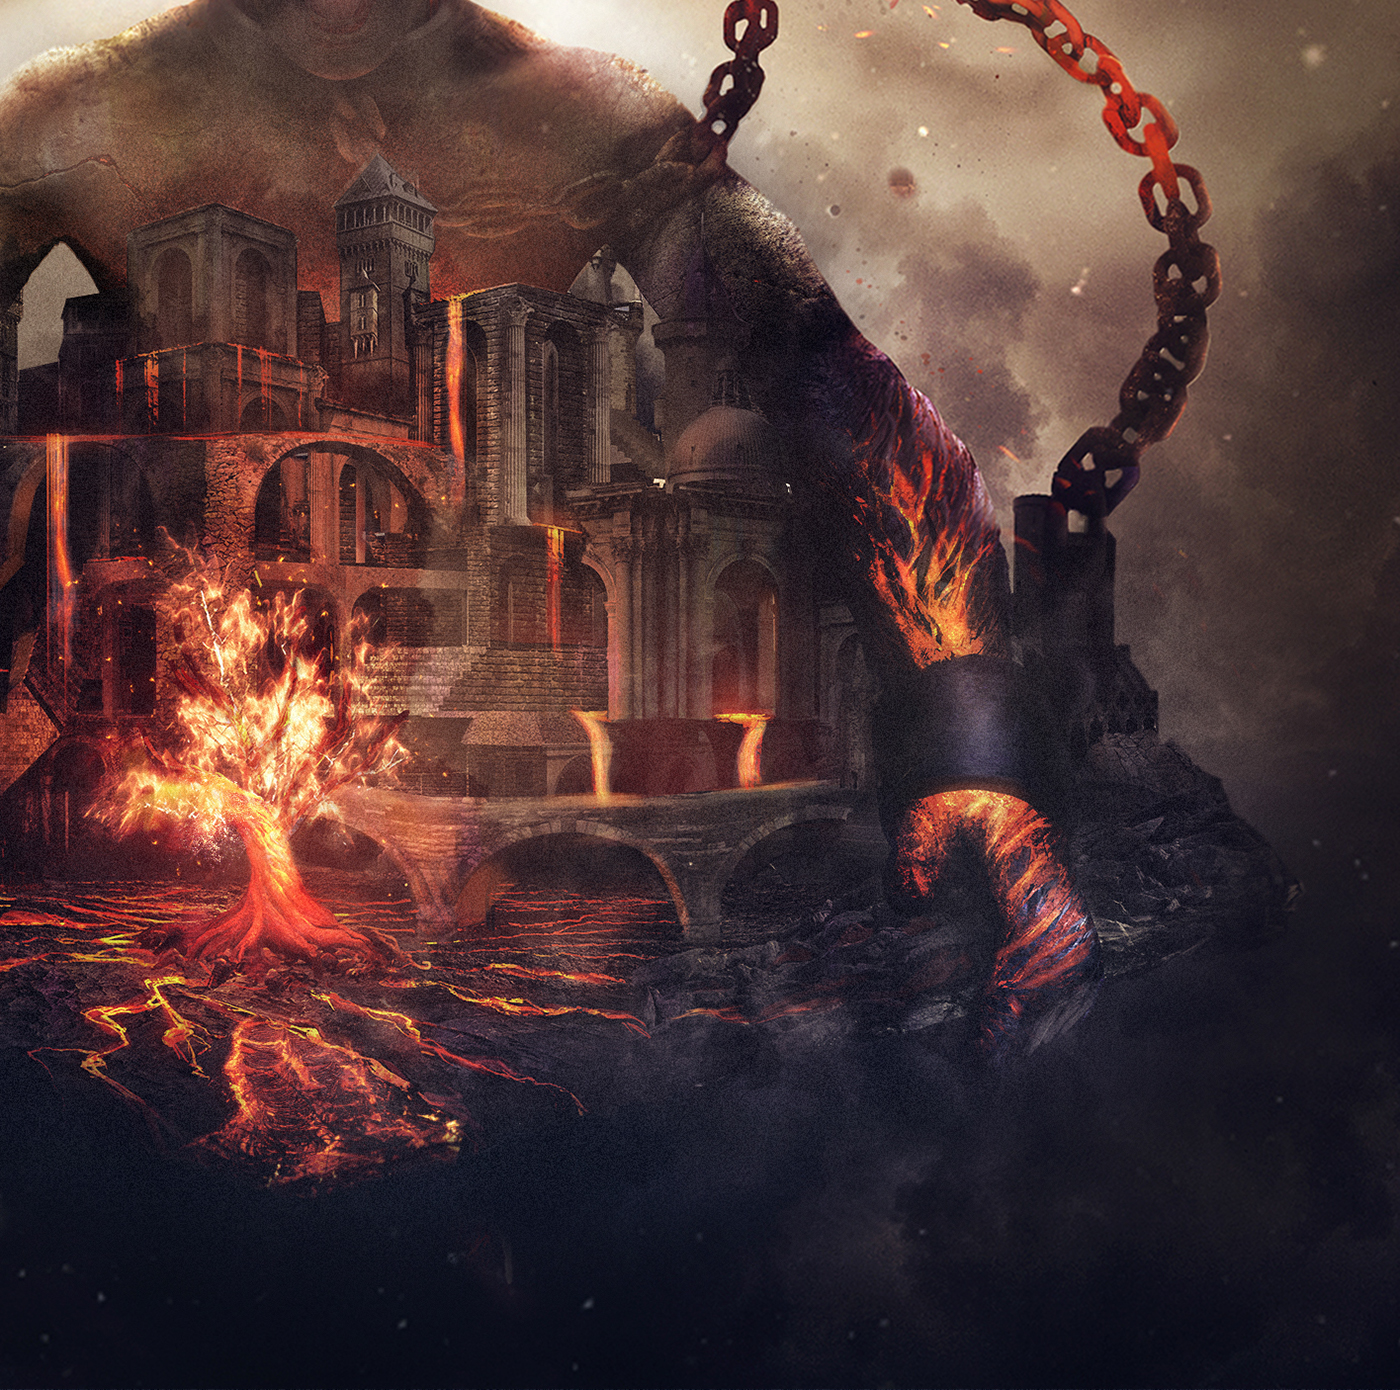 lava fire creation arch #Ps25Under25 Ps25Under25 photoshop